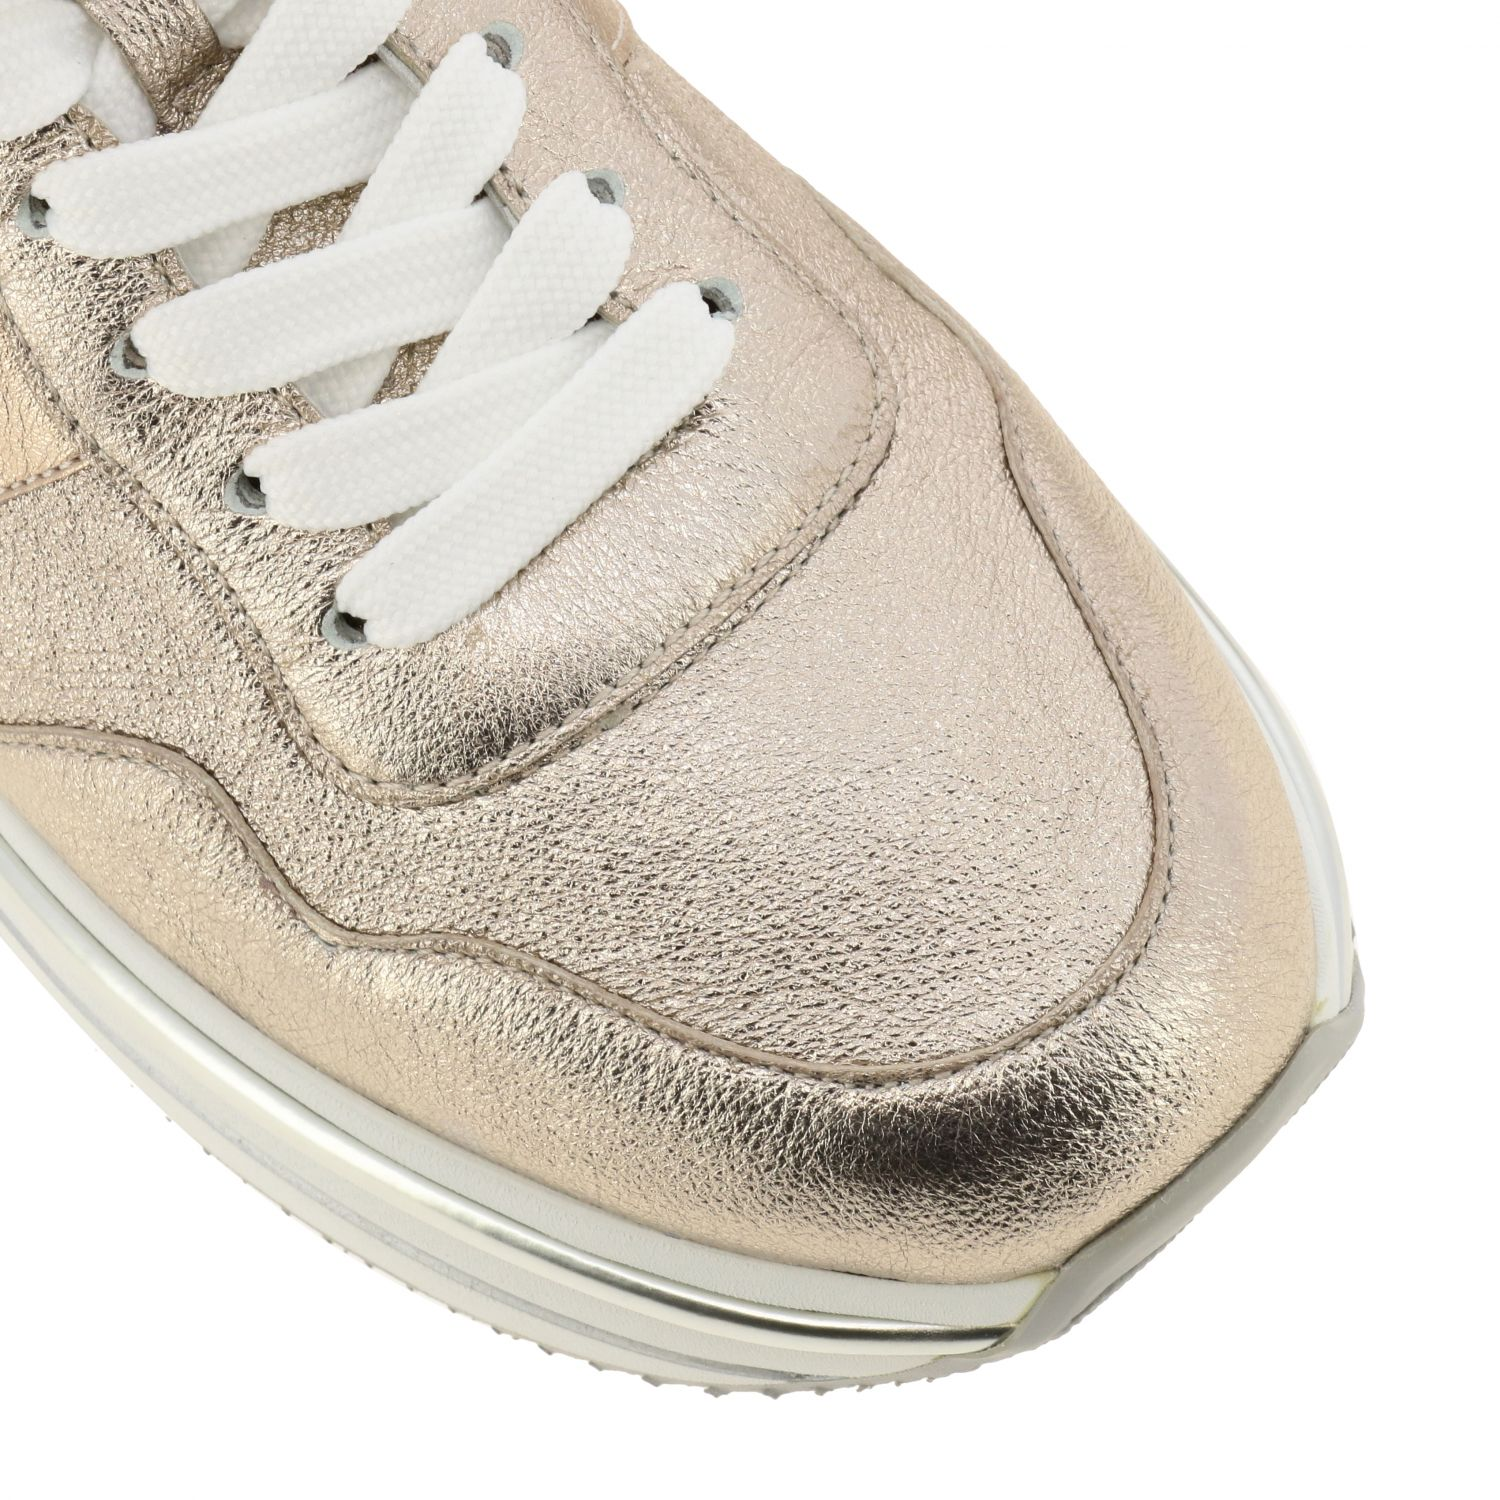 Hogan sneakers in laminated and mirrored leather with sole 222 pink 4